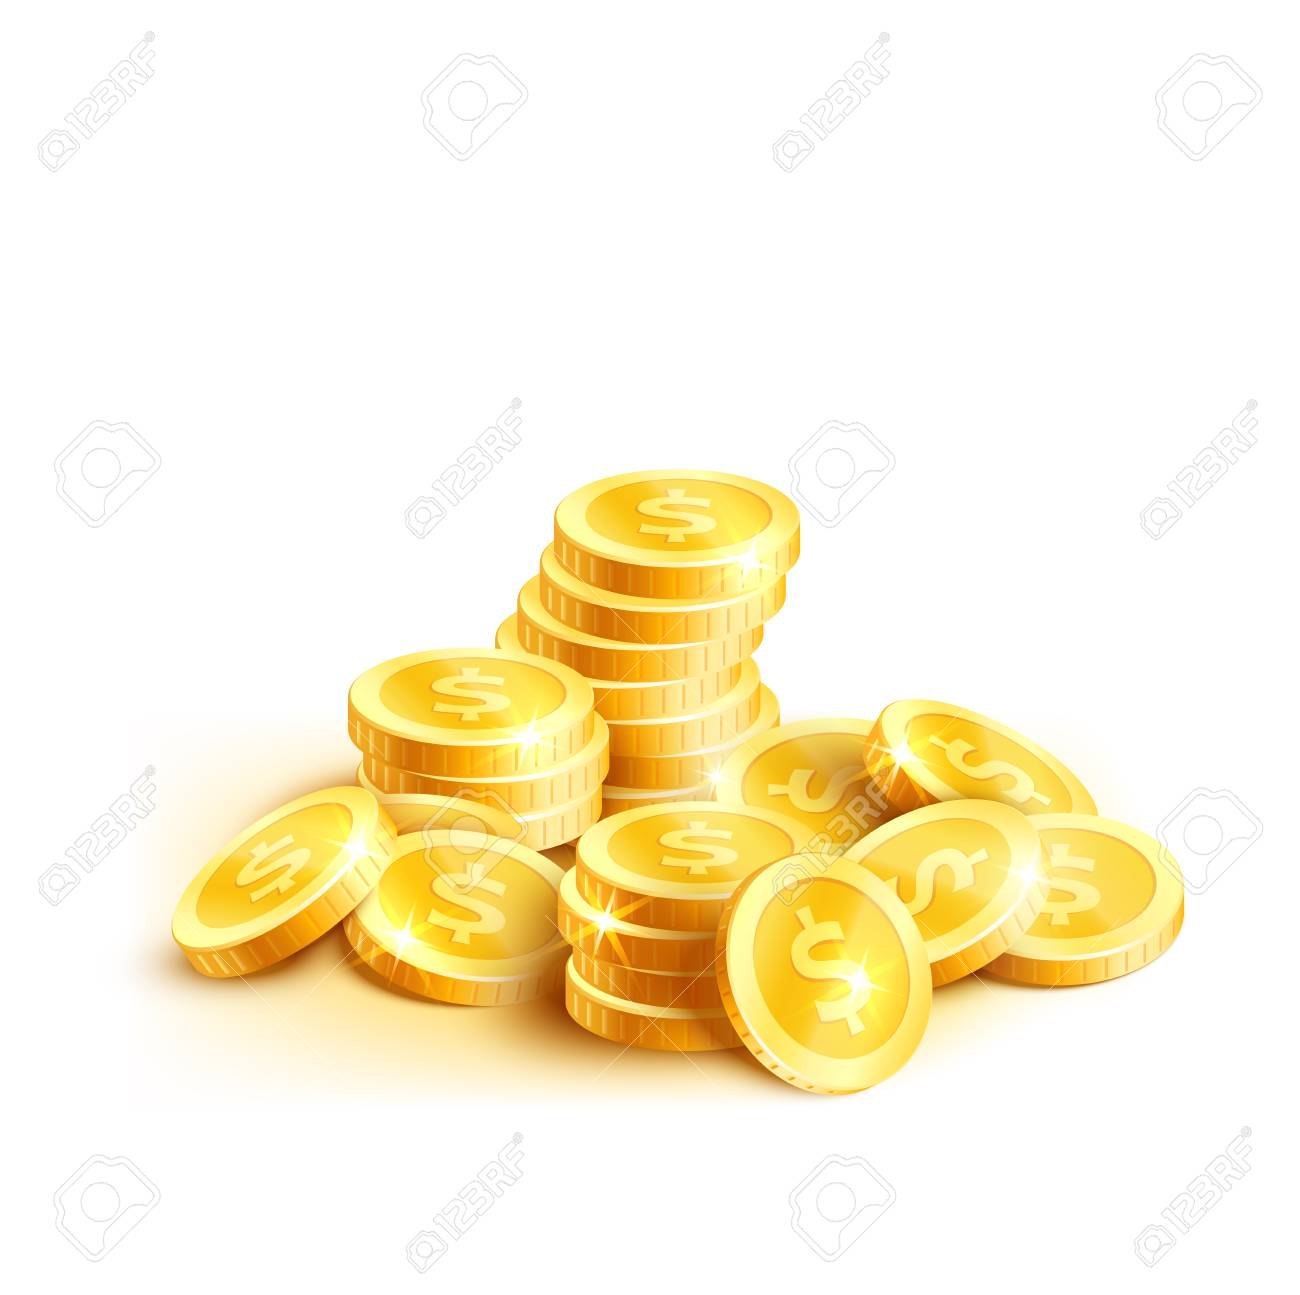 Golden coins or gold cent coin pile icon  Vector isolated symbol